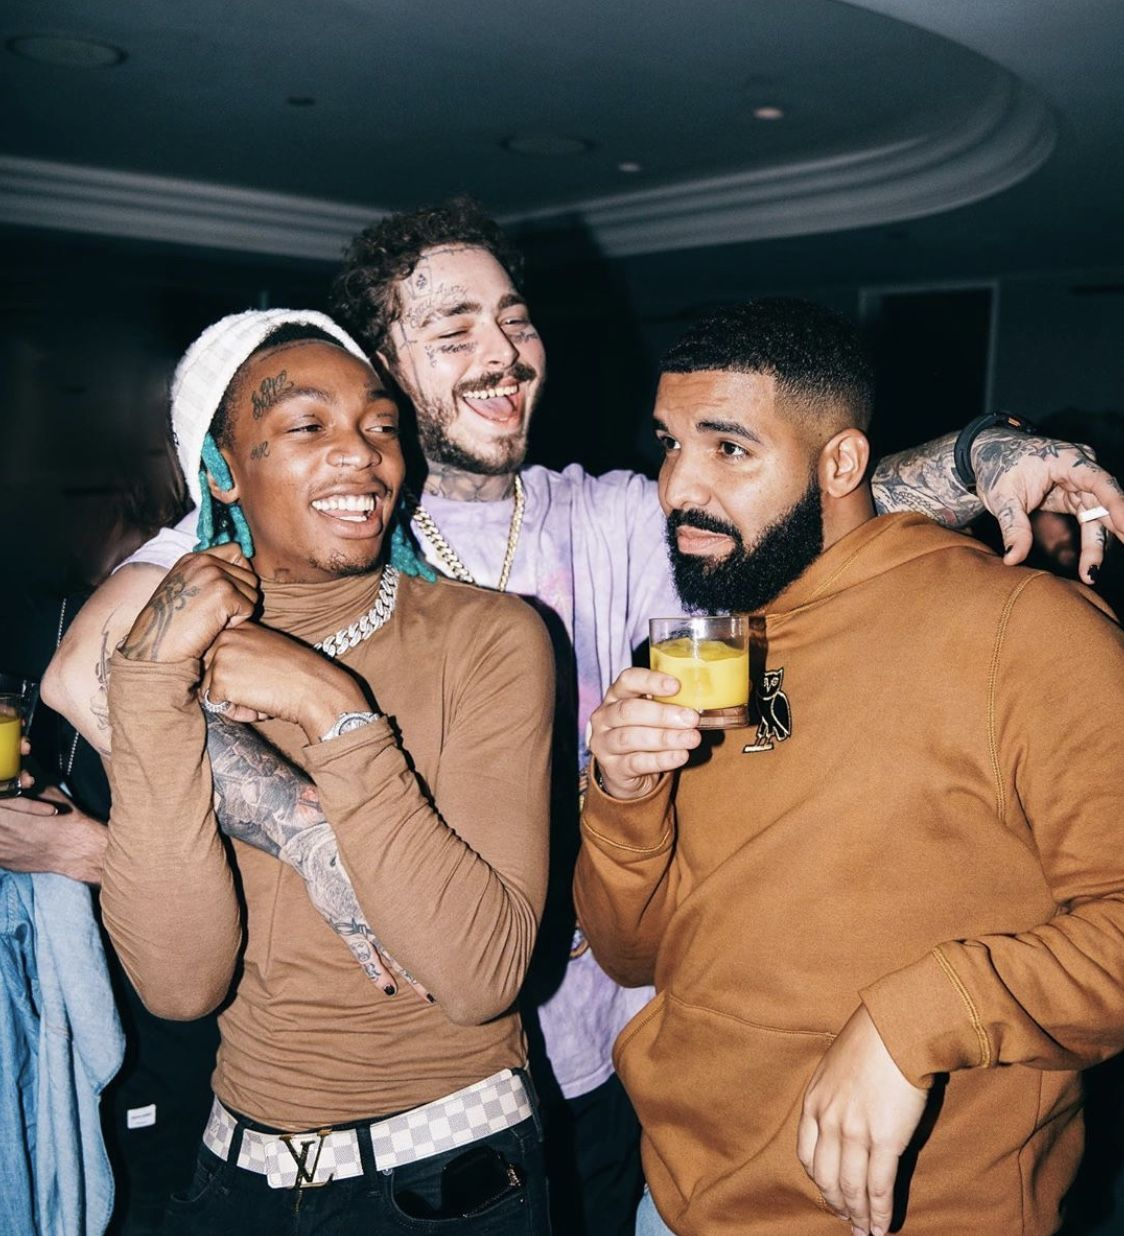 Vince Staples Wallpaper Vince Staples Wallpaper In 2020 Post Malone Wallpaper Post Malone Photo Wall Collage